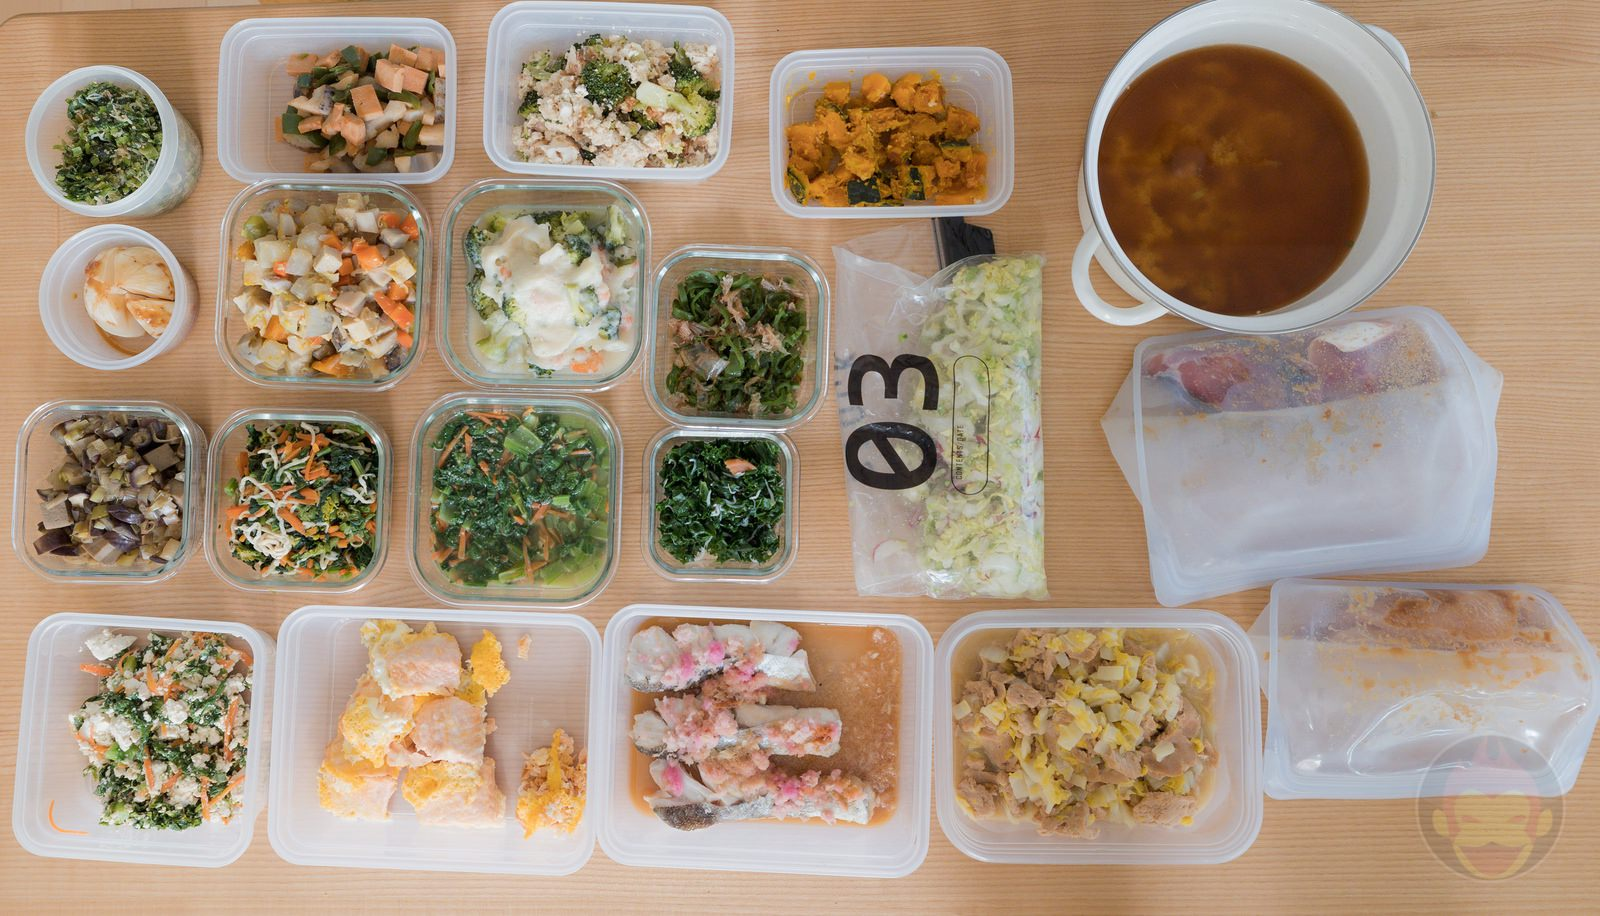 All-Foods-Made-by-Share-Dine-01.jpg